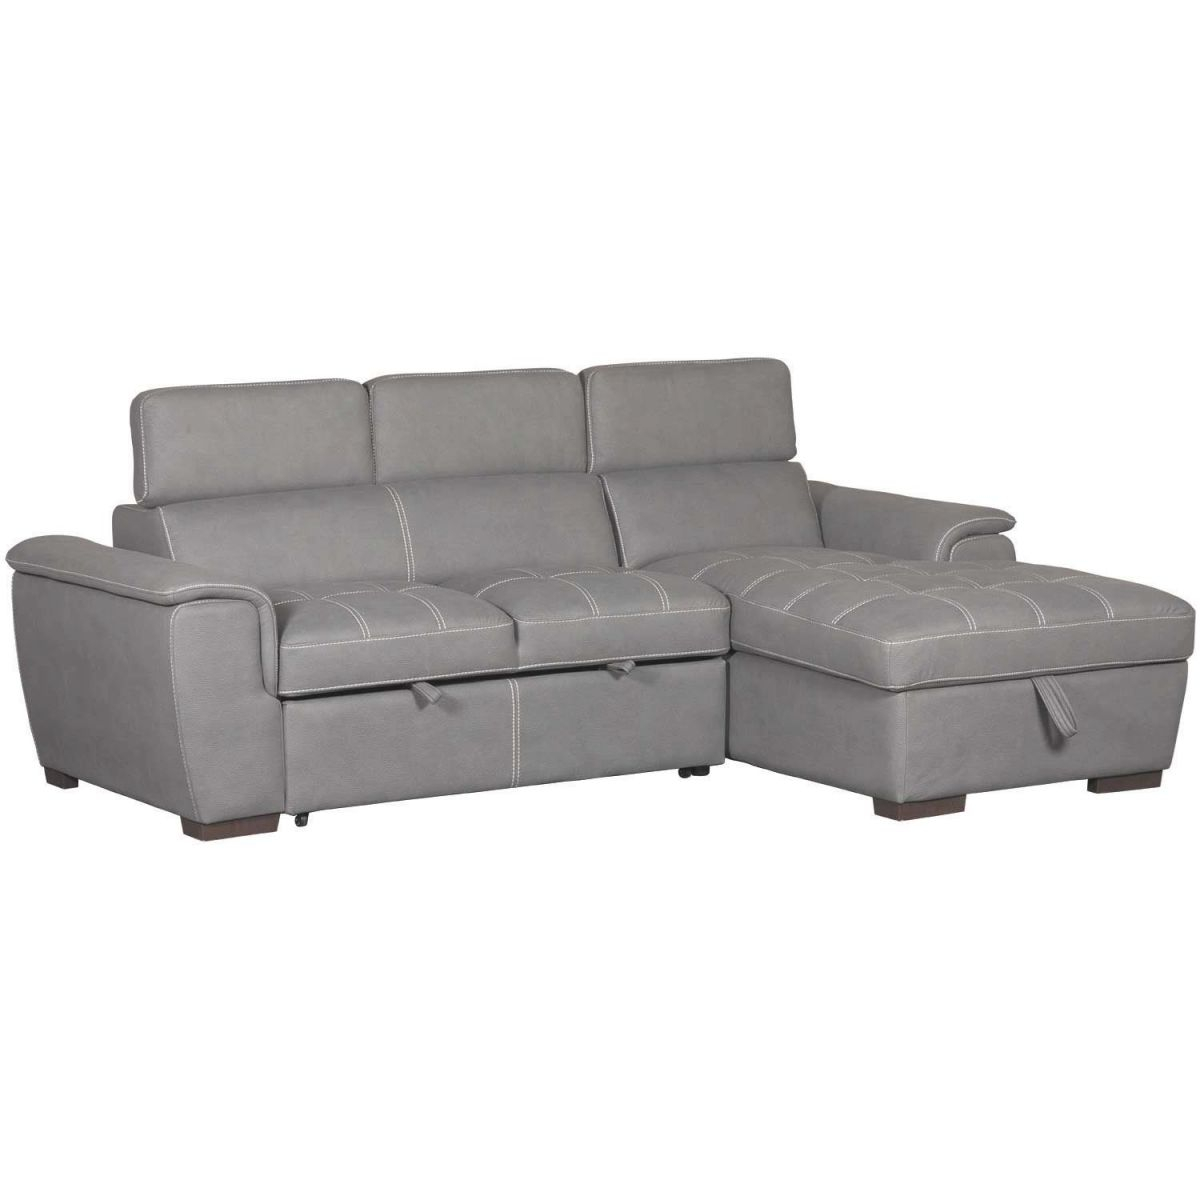 Levi 2 Piece Sectional With Pull Out Bed within 2 Piece Sectional With Chaise